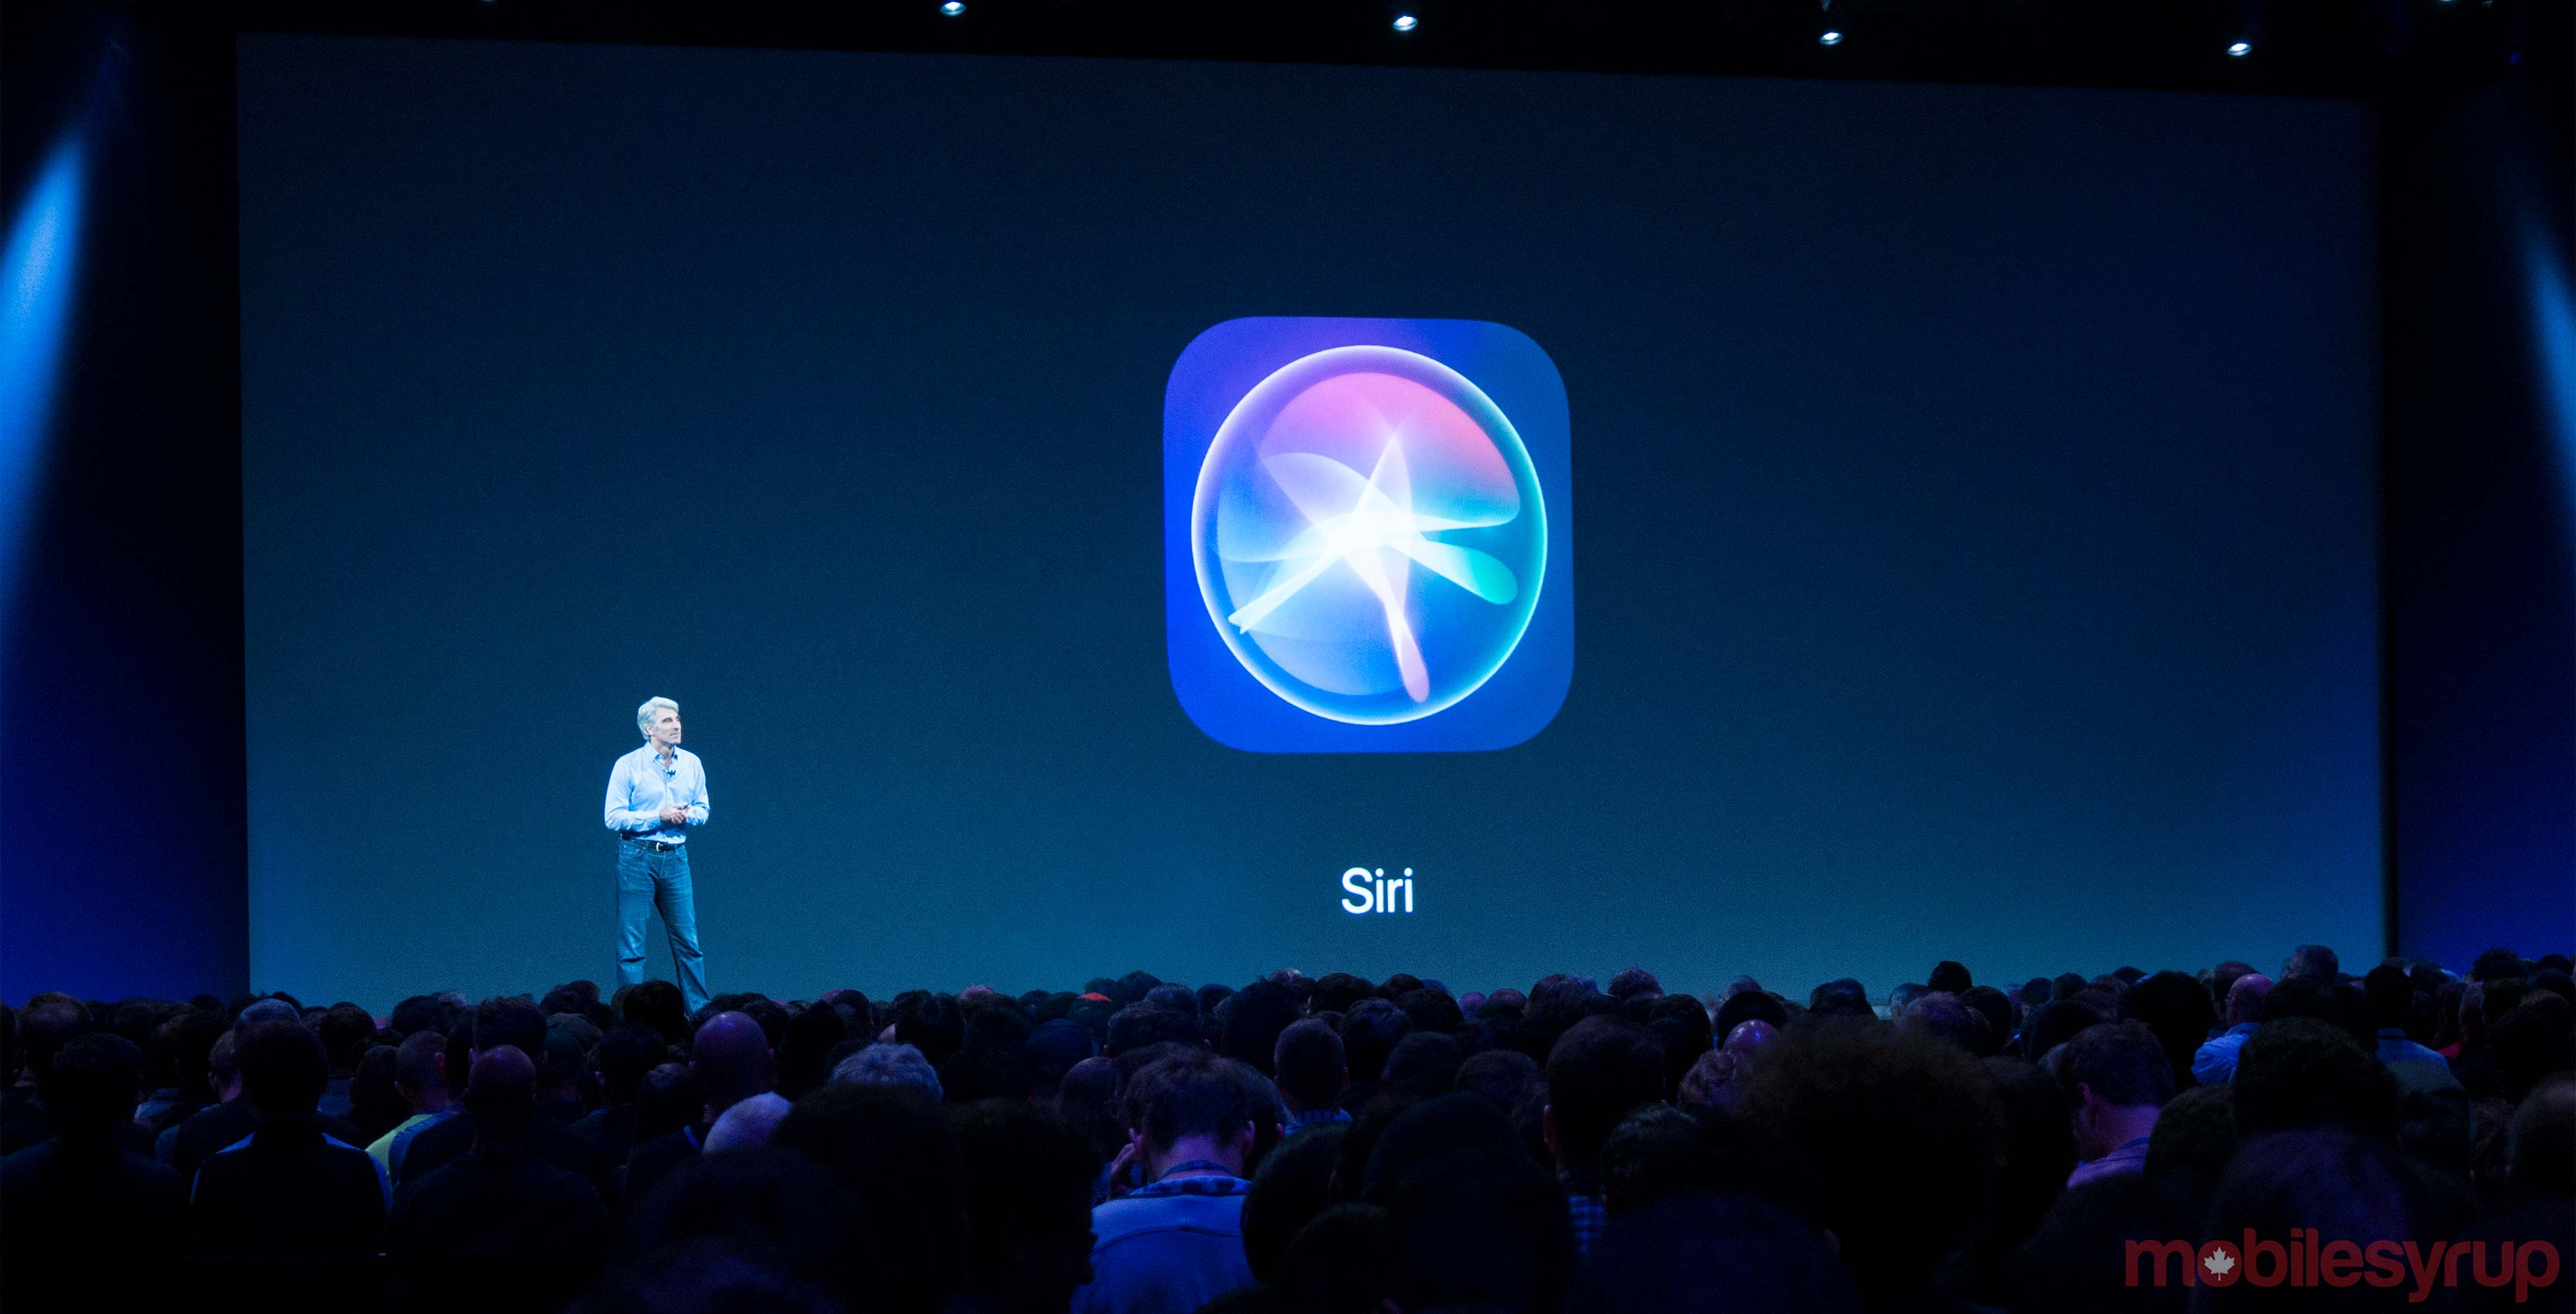 Siri features